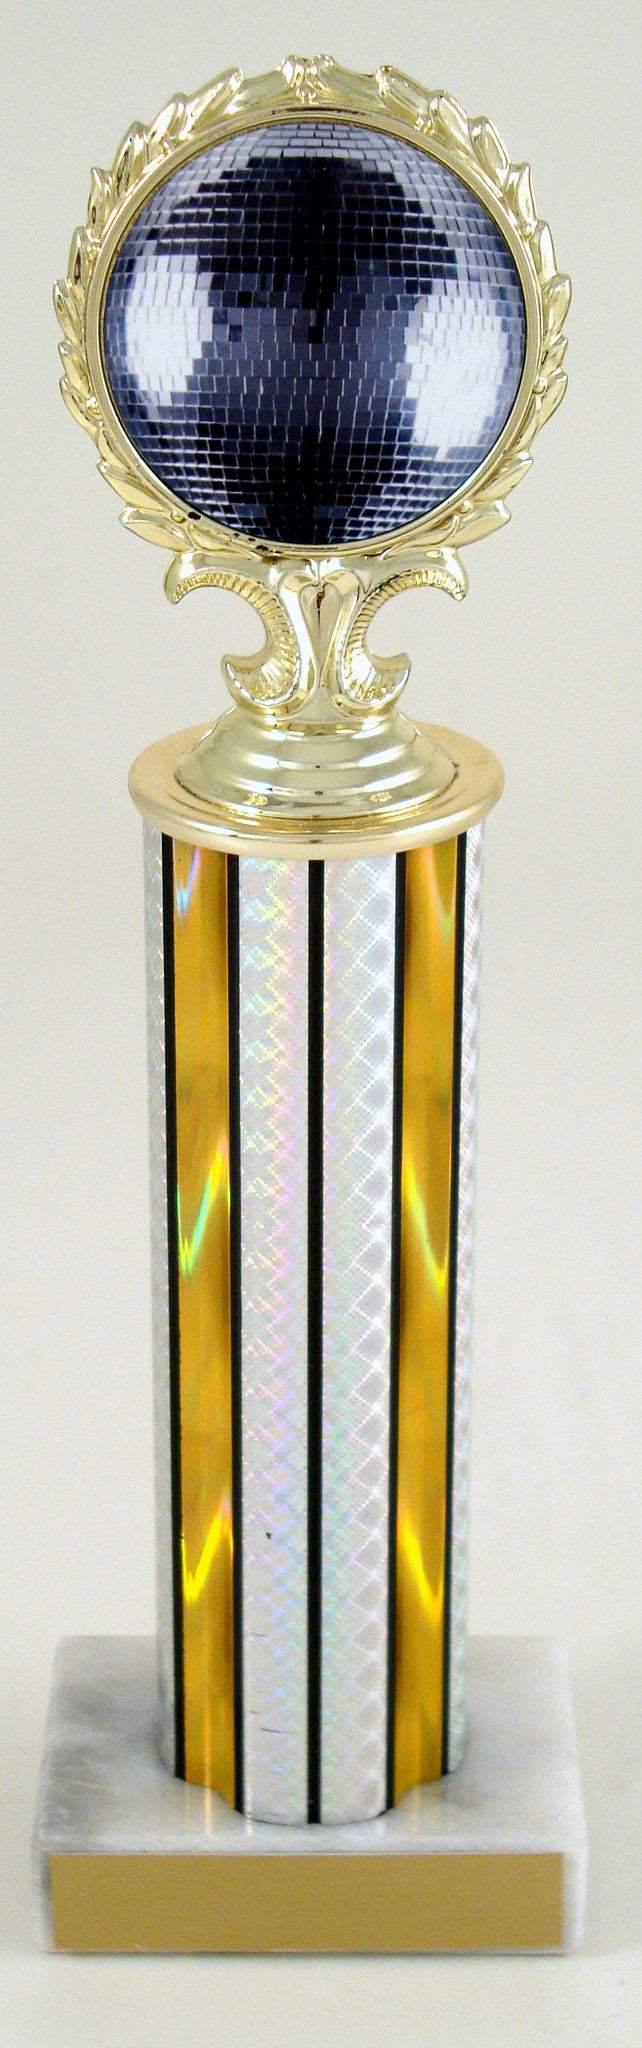 Disco Ball Medallion Column Trophy-Trophies-Schoppy's Since 1921